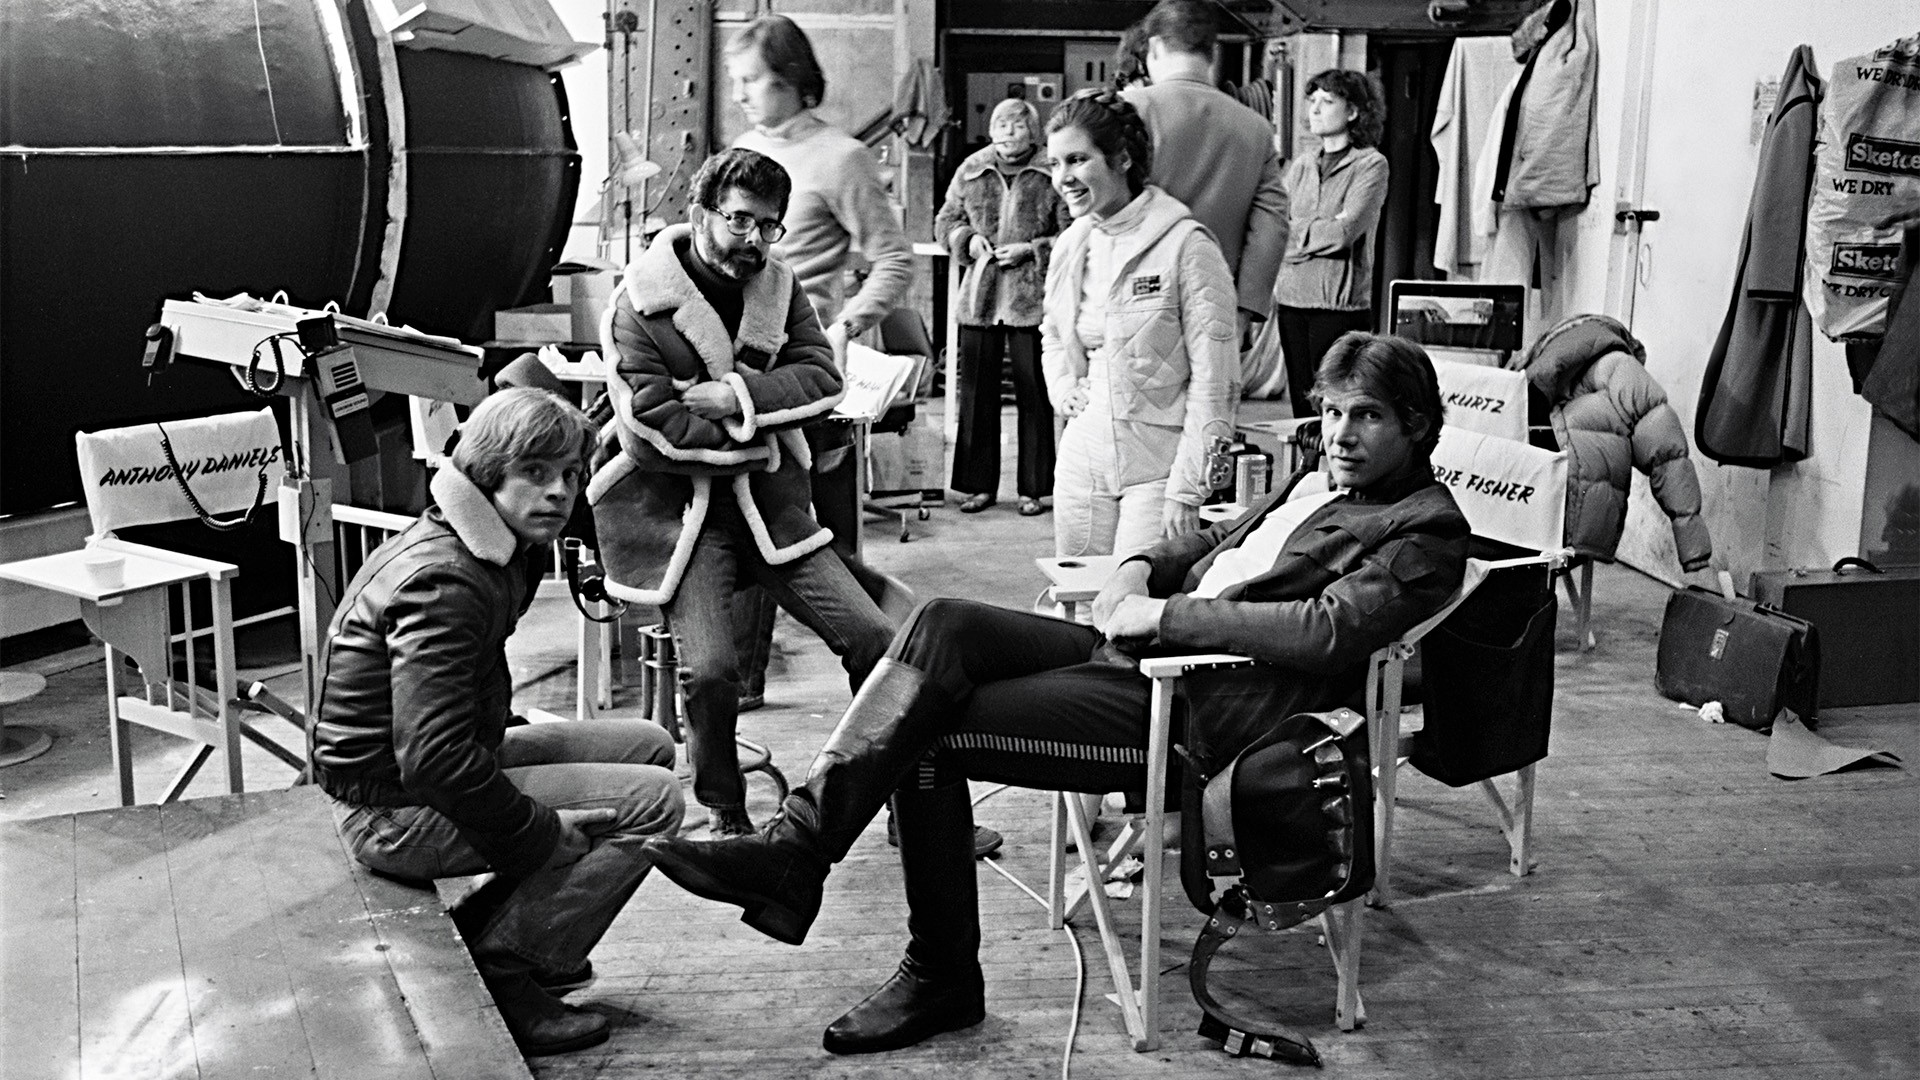 Mark Hamill, George Lucas, Carrie Fisher, and Harrison Ford